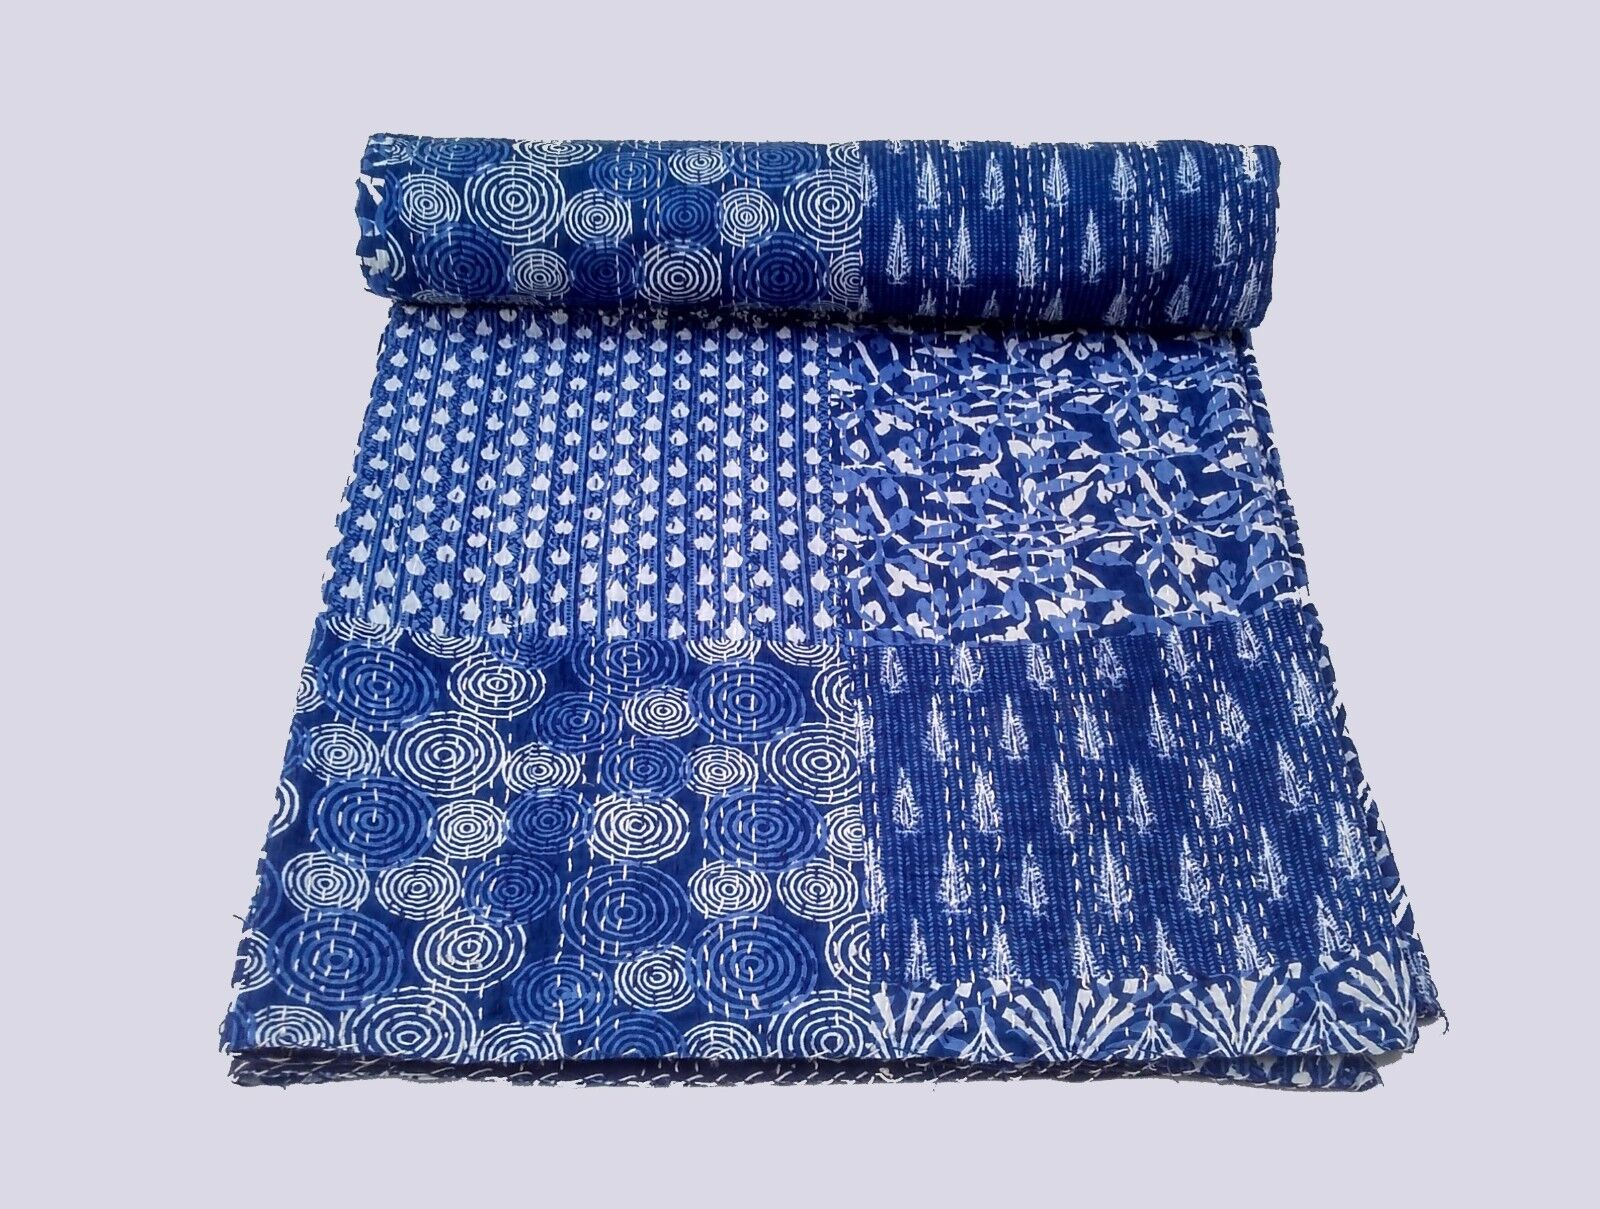 Baby Quilt Queen Cotton Bed Cover Bedspread Blanket Sheet Throw Kantha Quilt